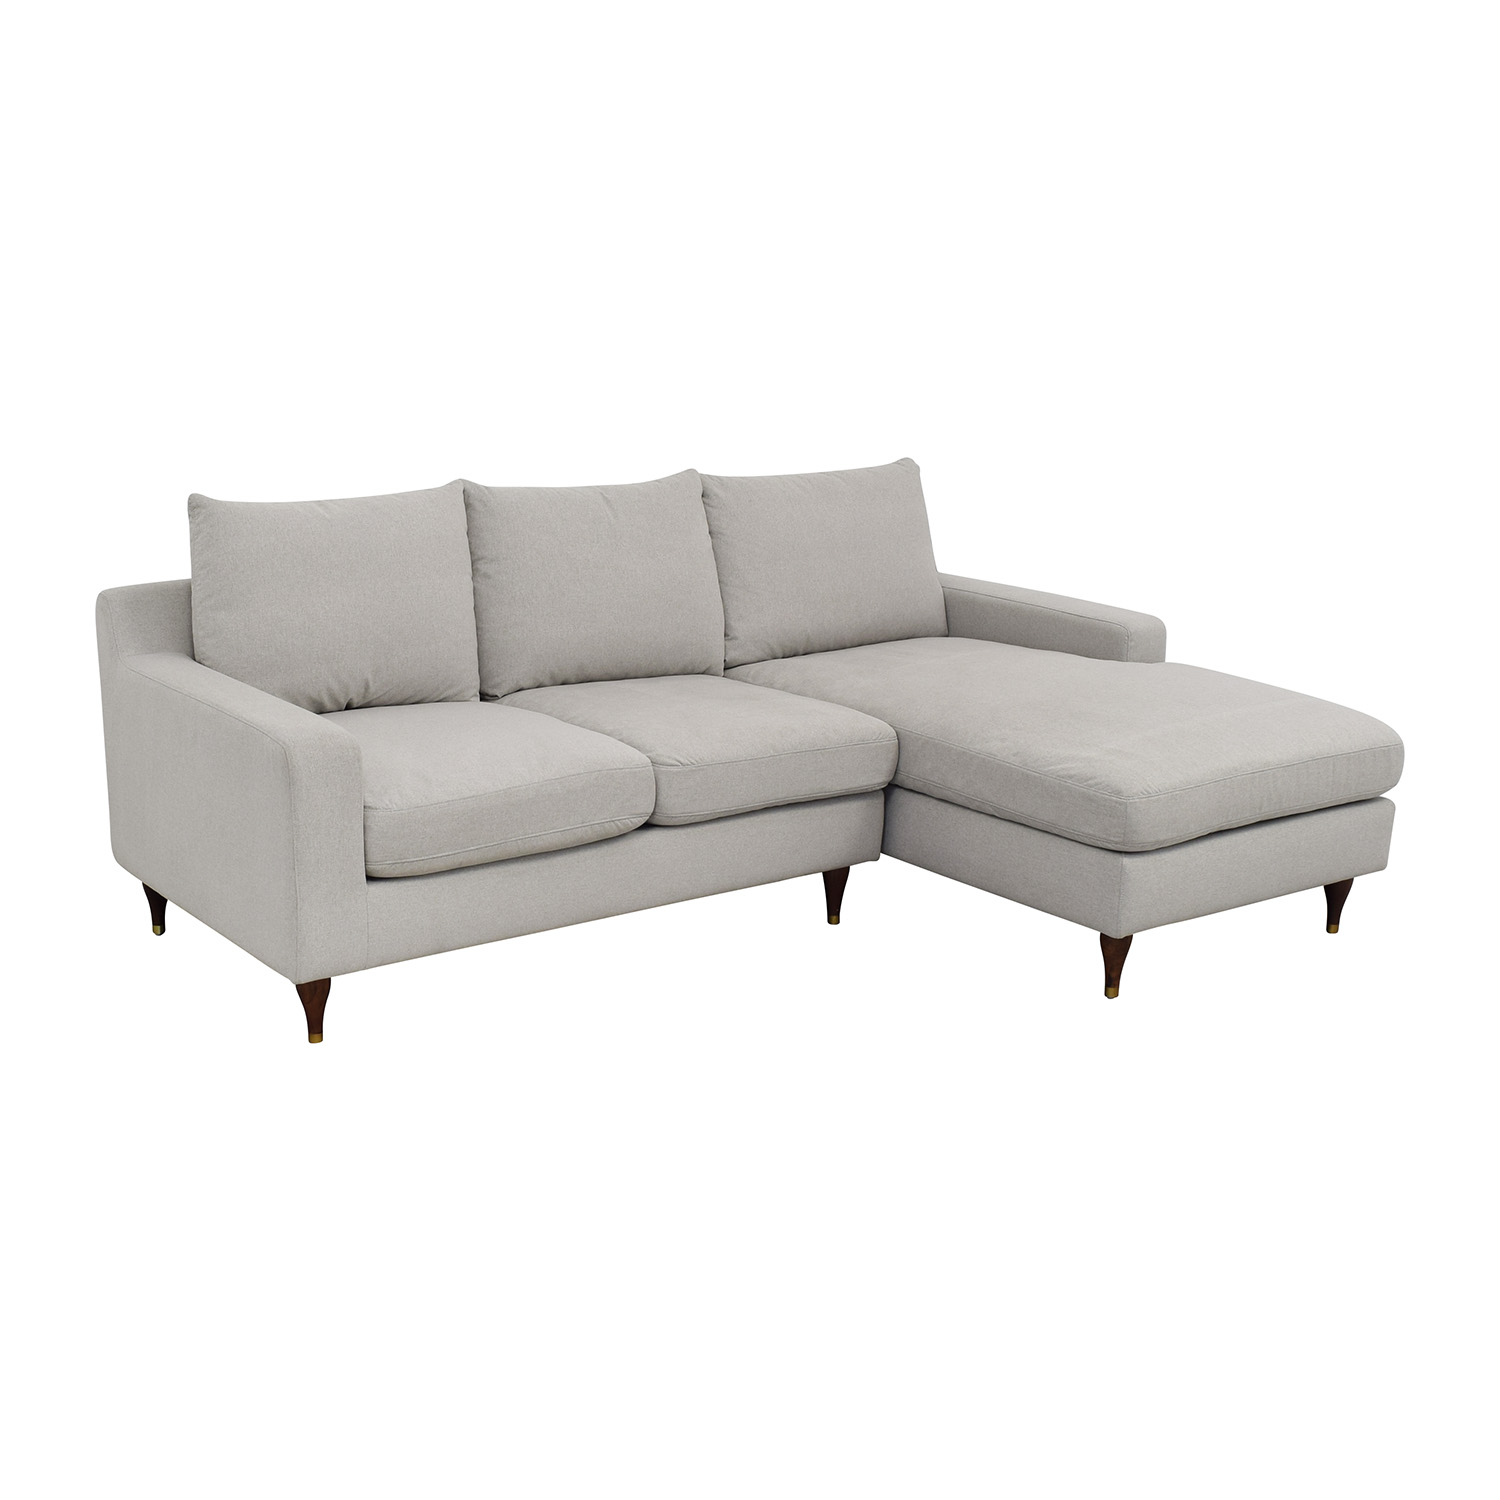 Interior Define Sloan Sectional Sofa with Chaise sale